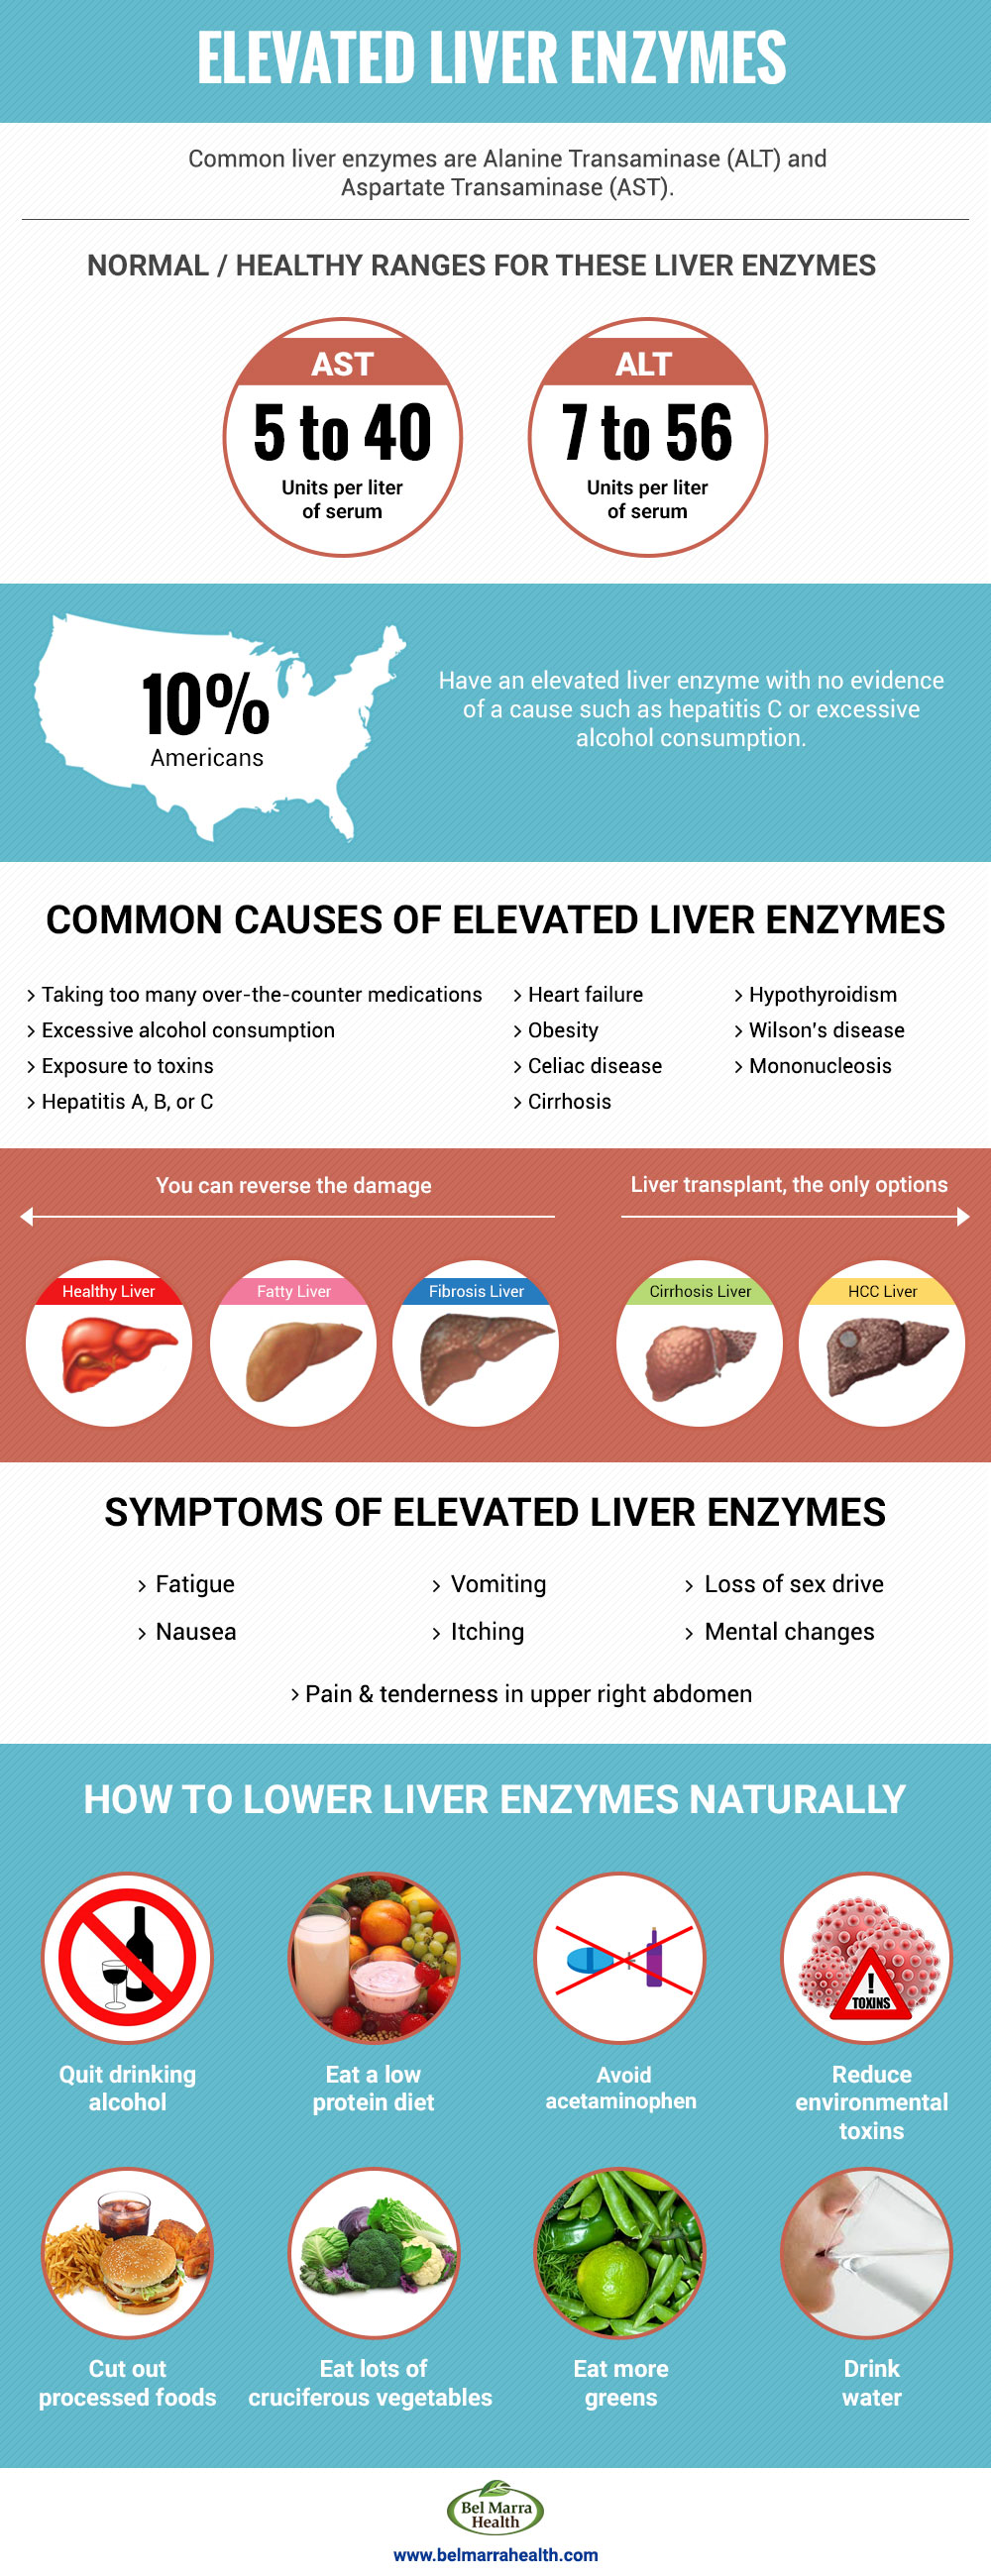 What are high liver enzymes?